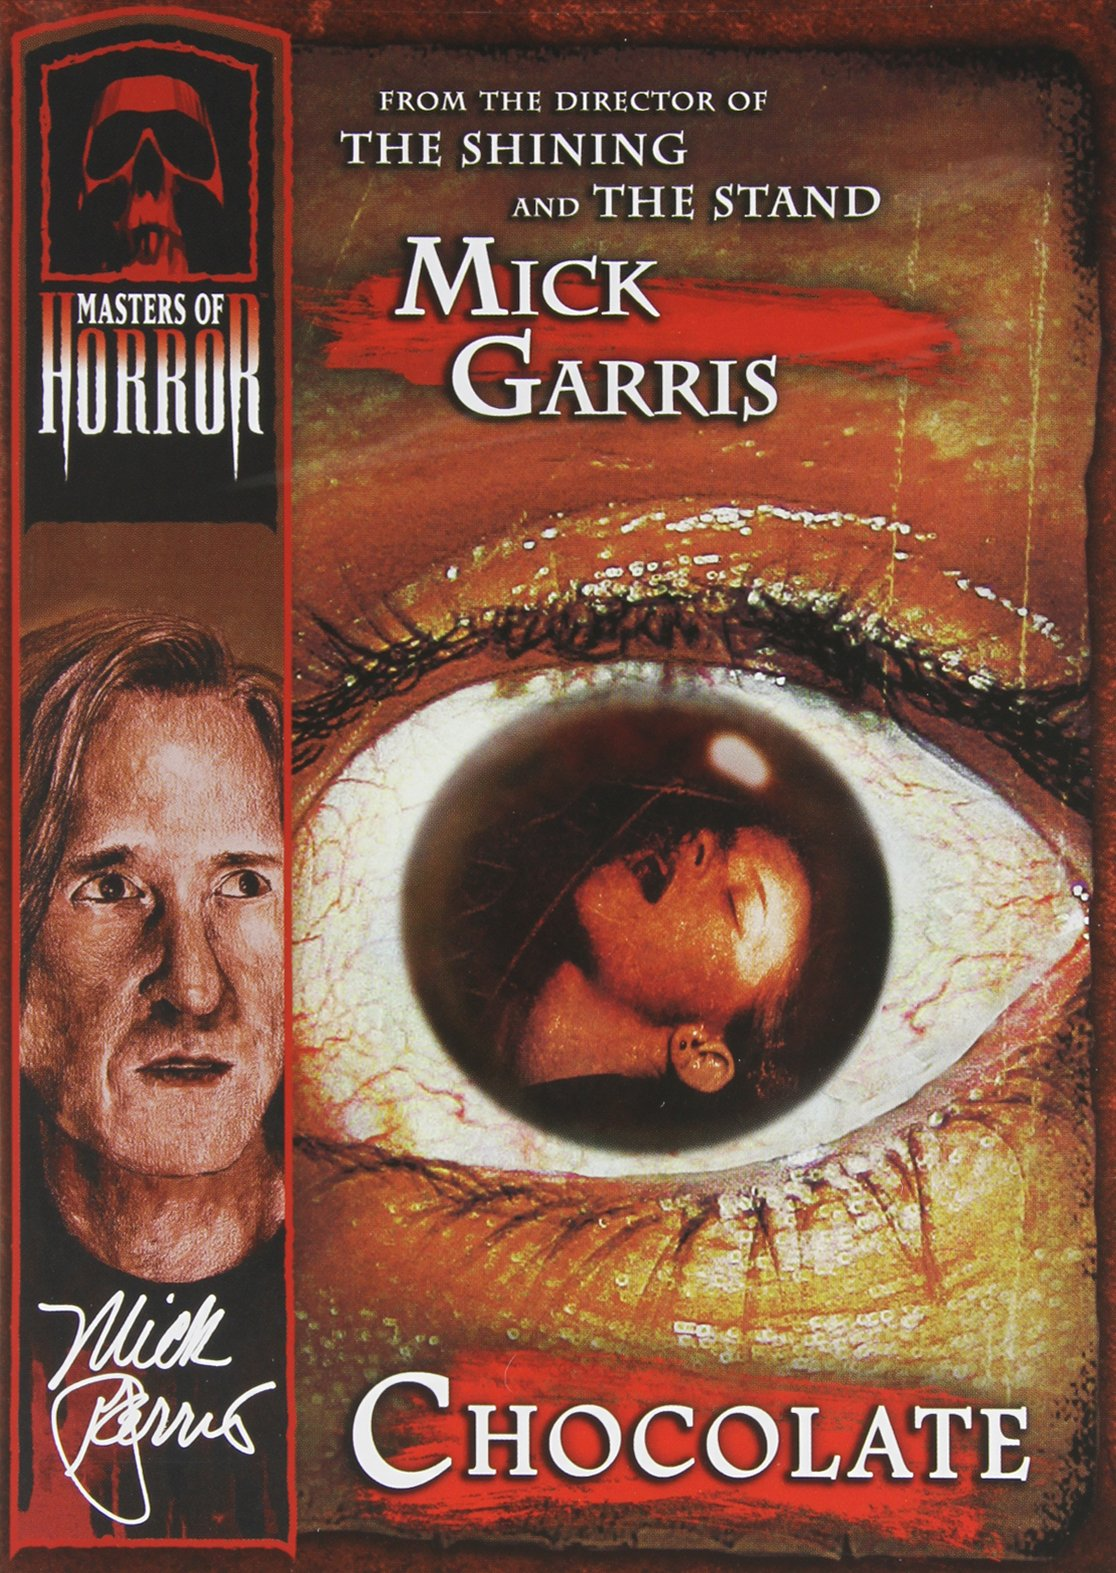 Masters of Horror - Coscarelli and Garris